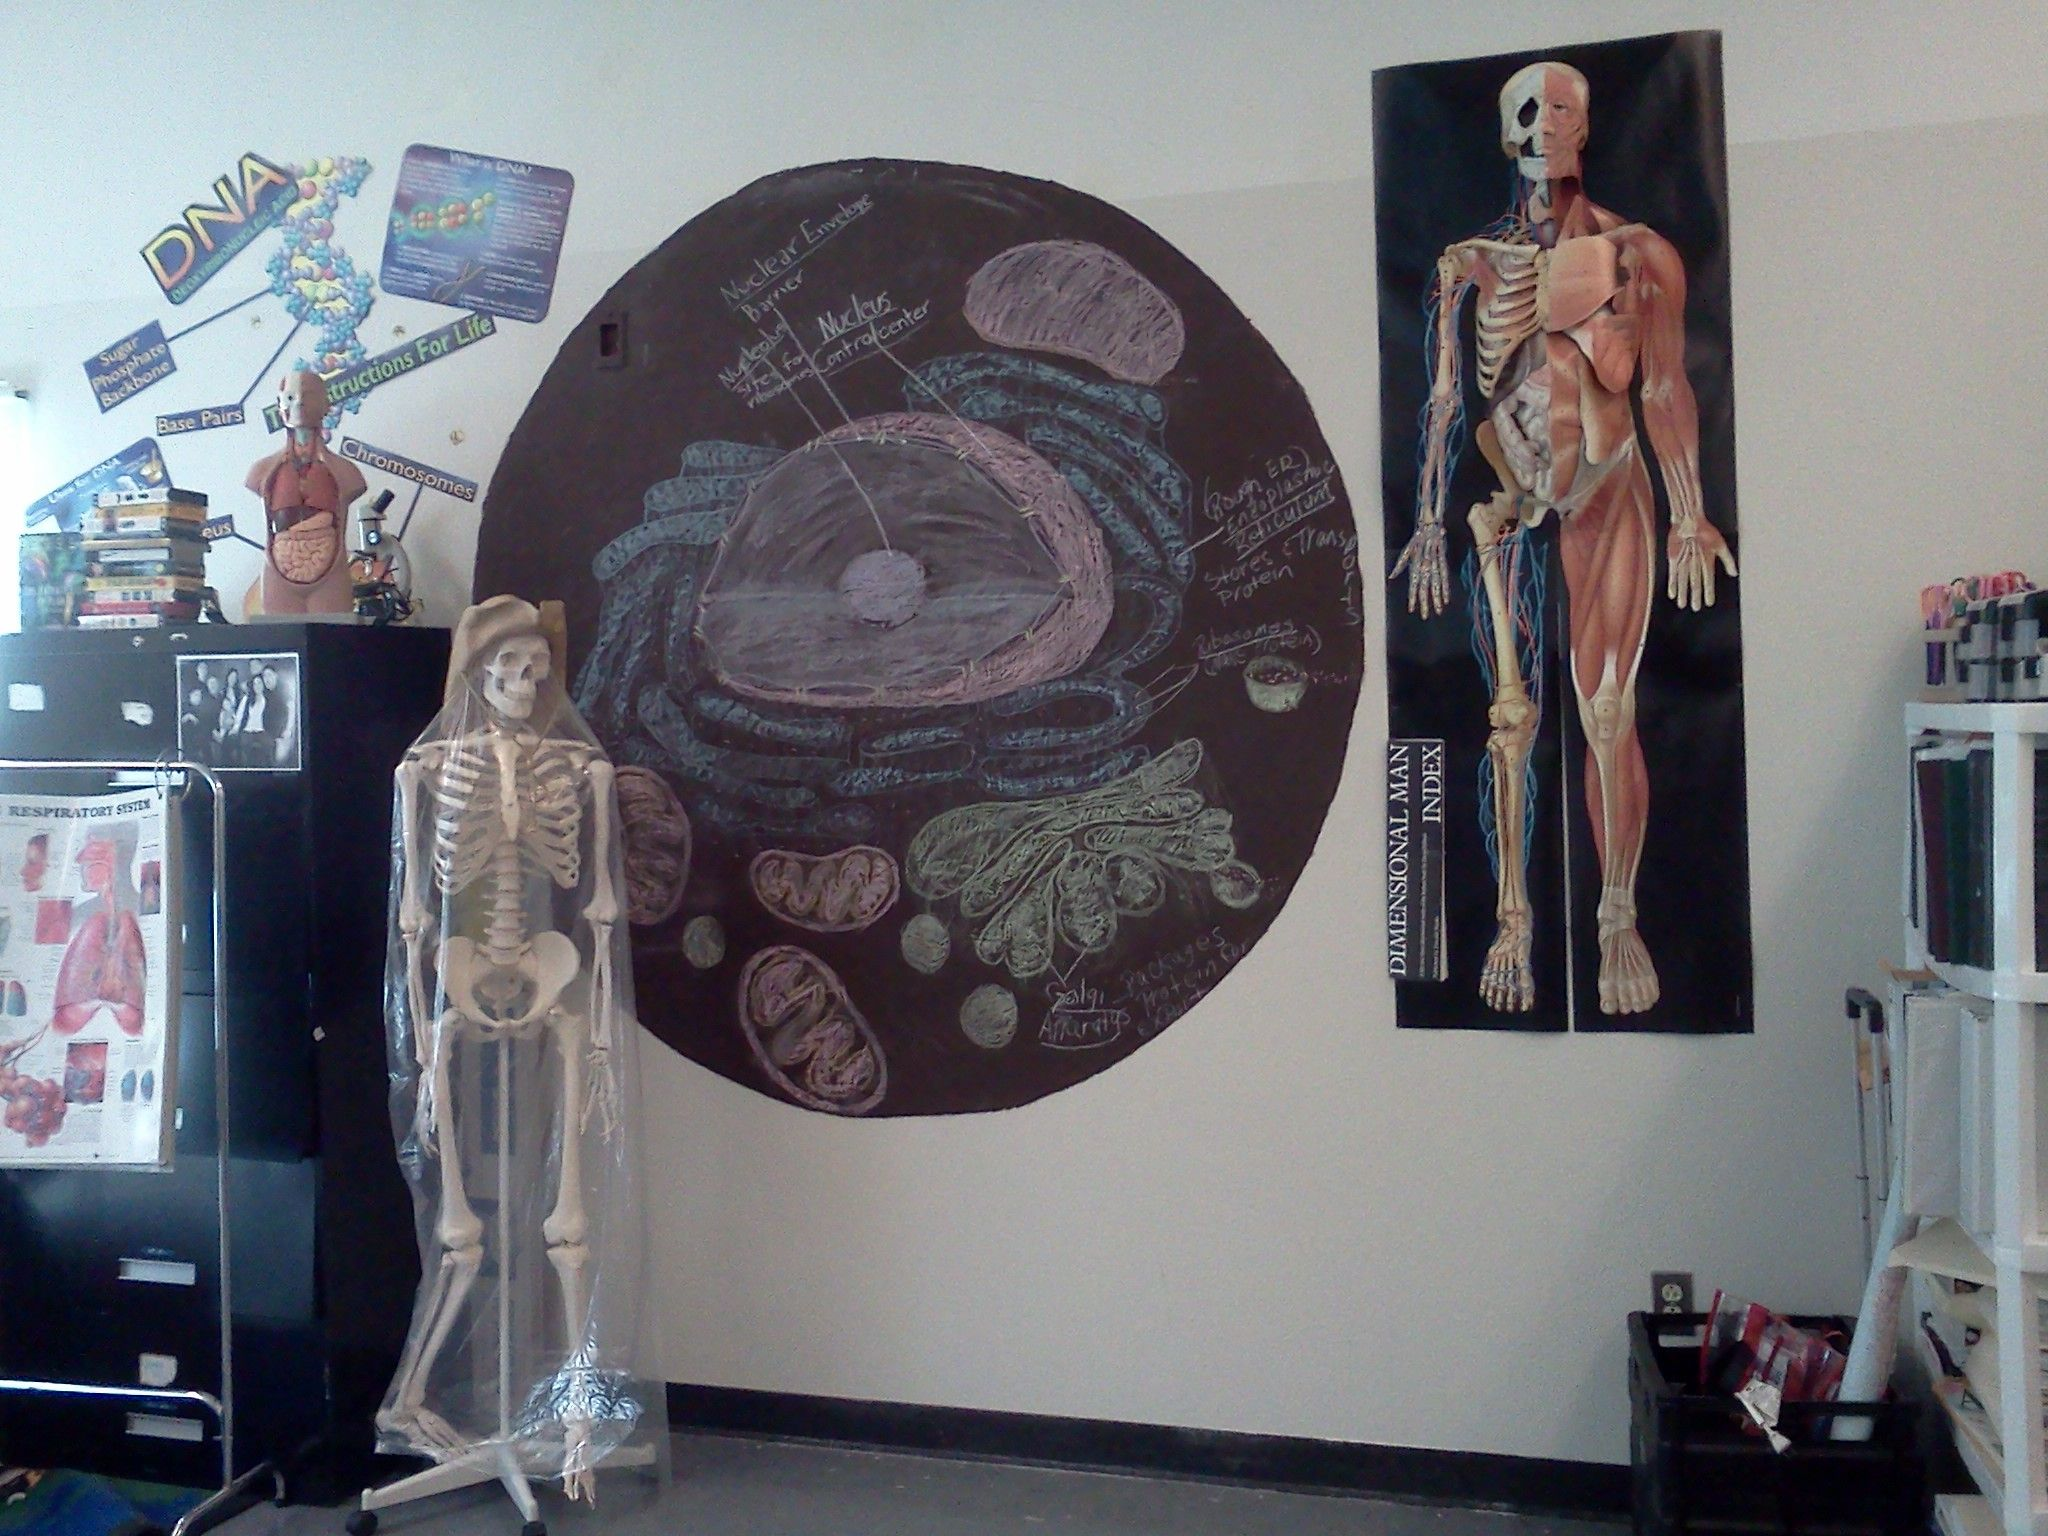 My Anatomy and Physiology classroom would look something like this ...